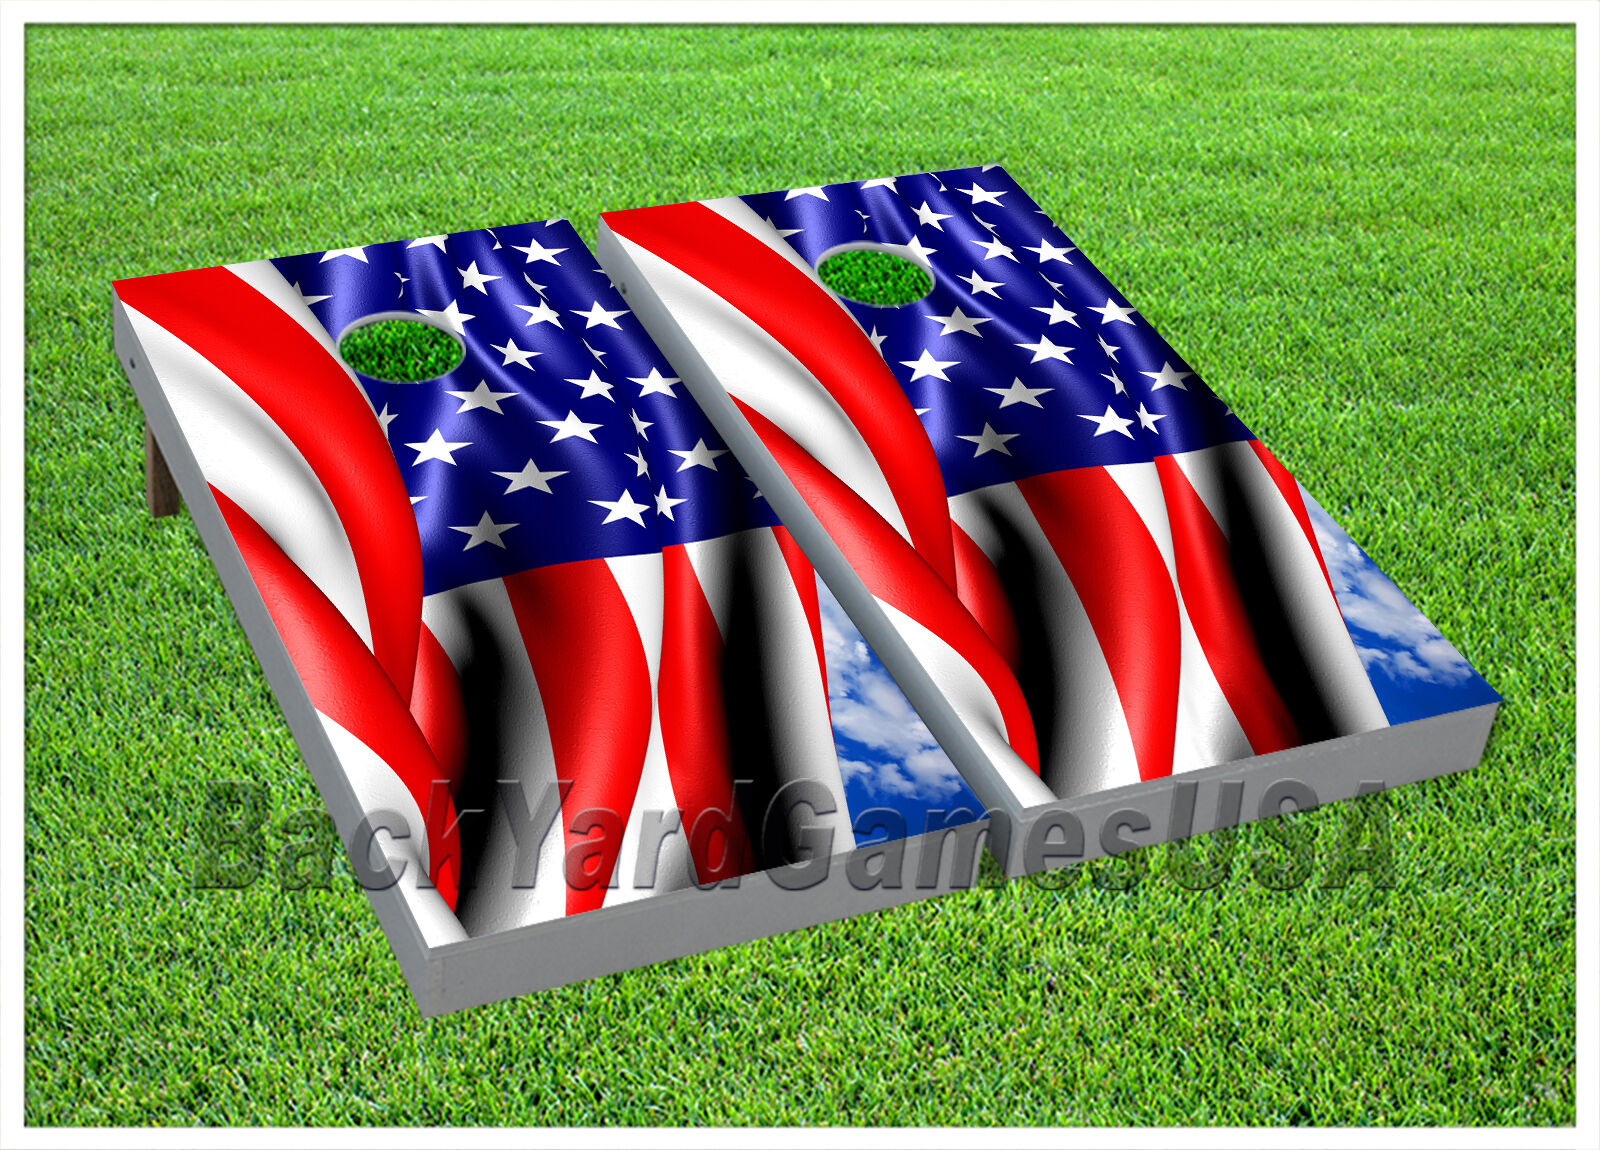 CORNHOLE BEANBAG TOSS GAME w Bags Game  Boards USA Red White bluee Stars Set 1109  high discount